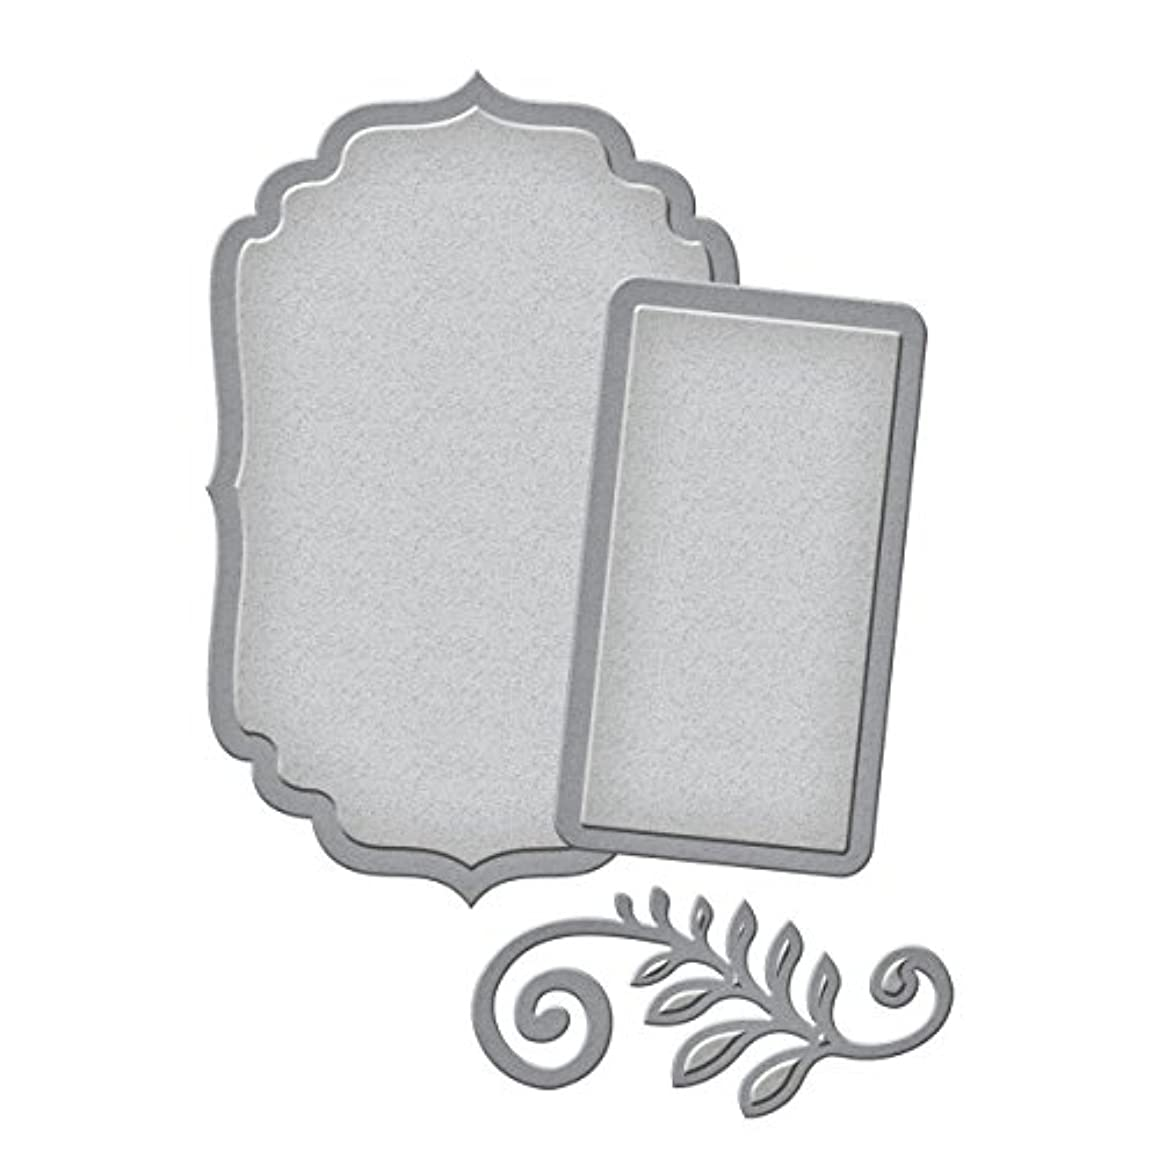 Spellbinders S1-011 Die D-Lites Label and Accent Etched/Wafer Thin Dies